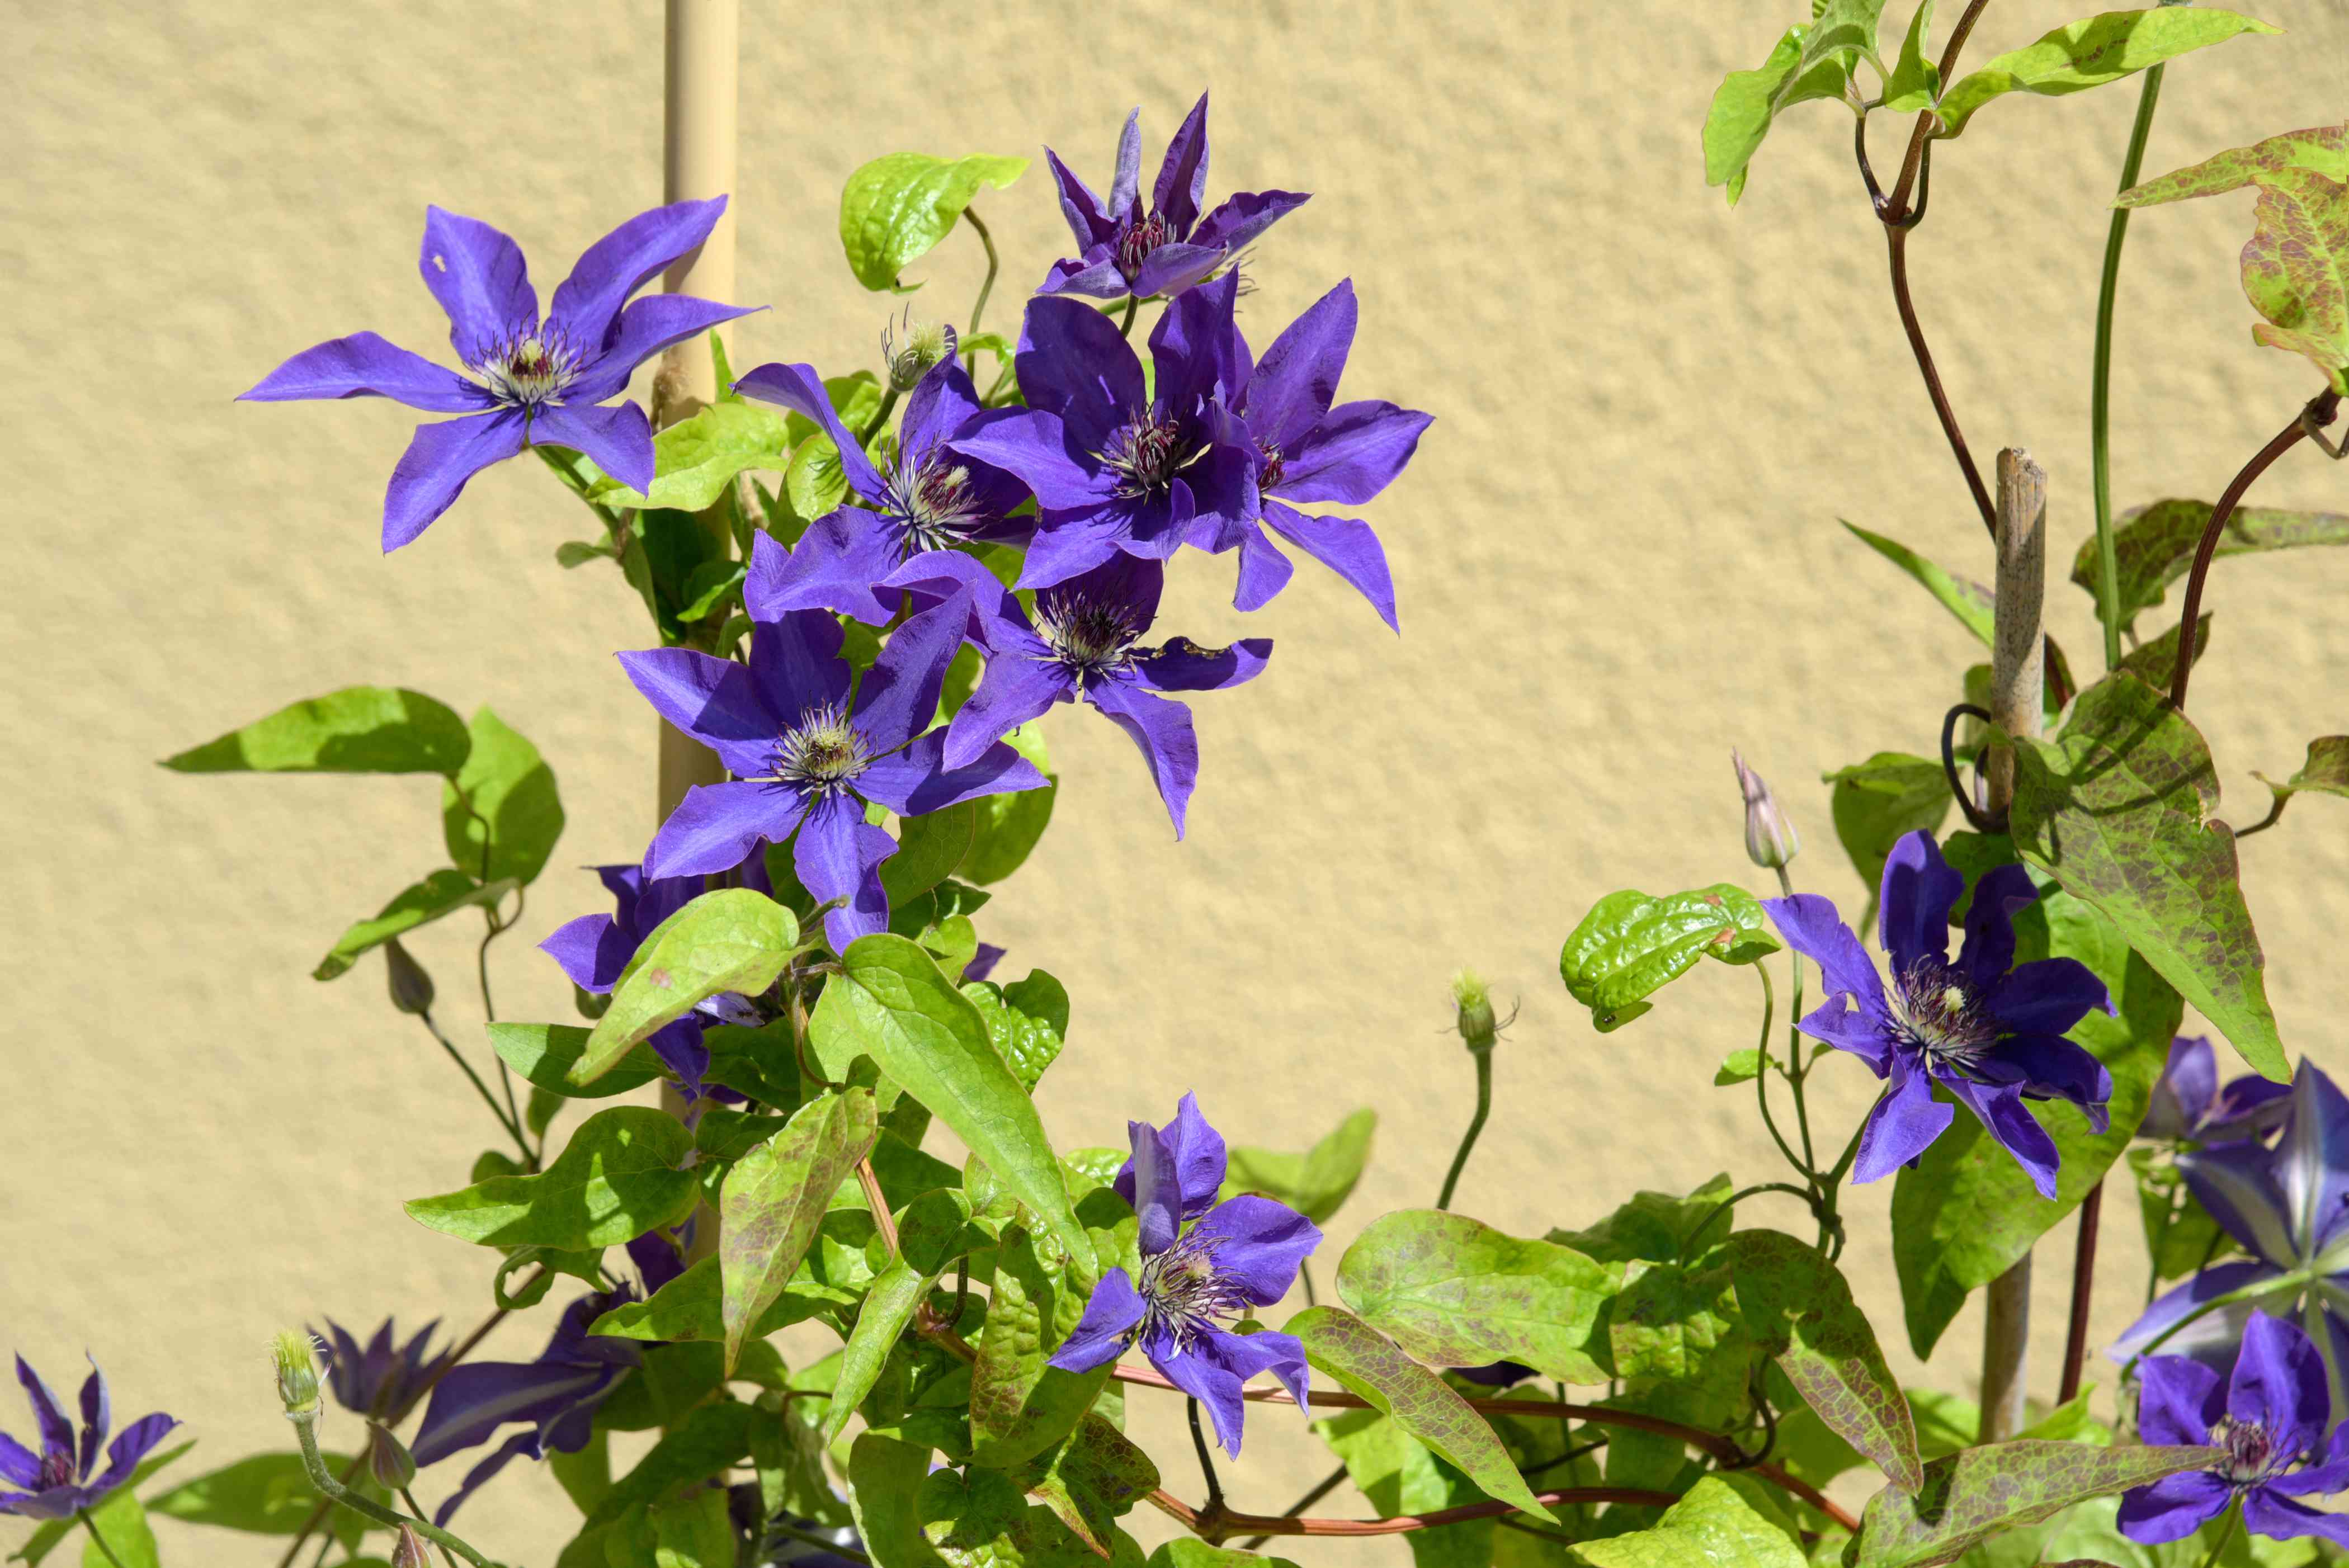 Clematis 'The President' plant with violet-blue flowers growing on bright green vine in sunlight